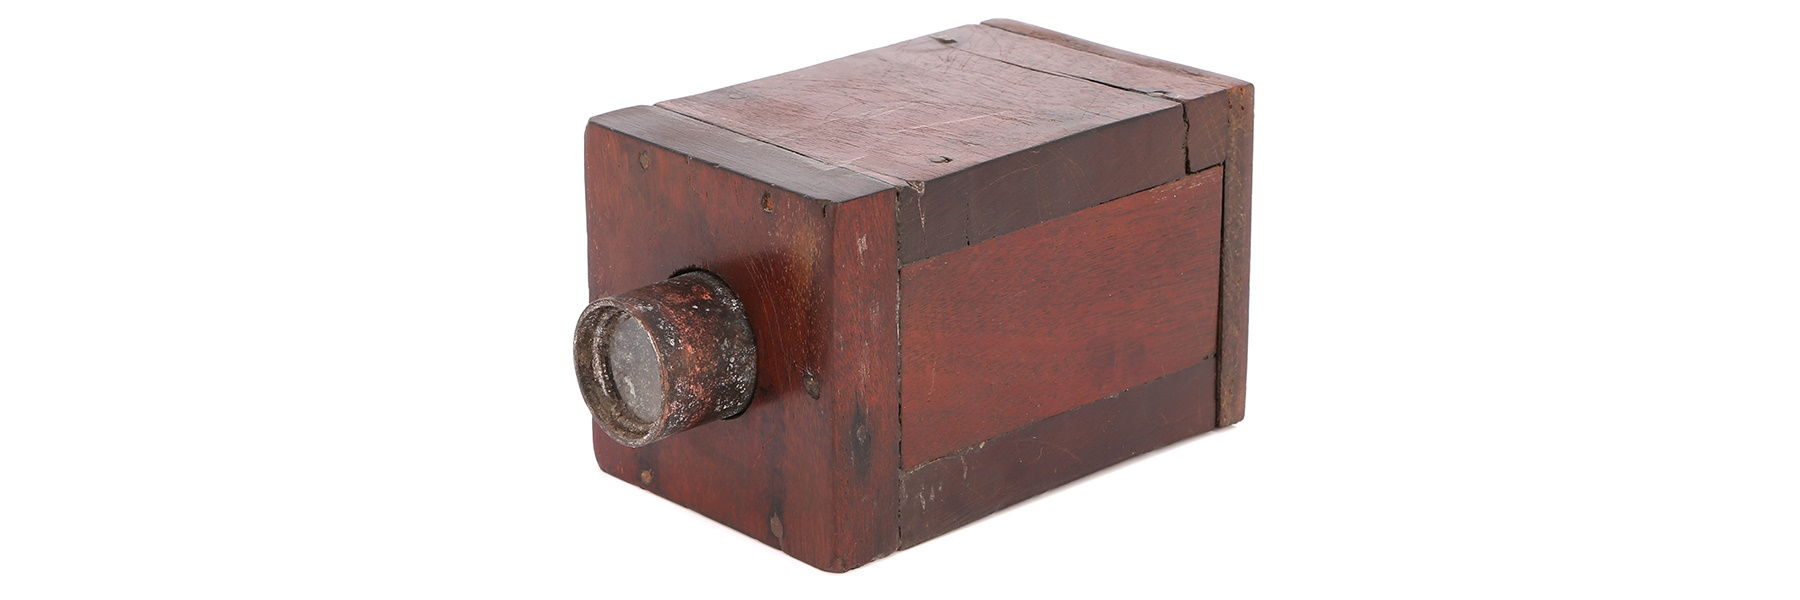 An Early Experimental Mousetrap Camera c.1839